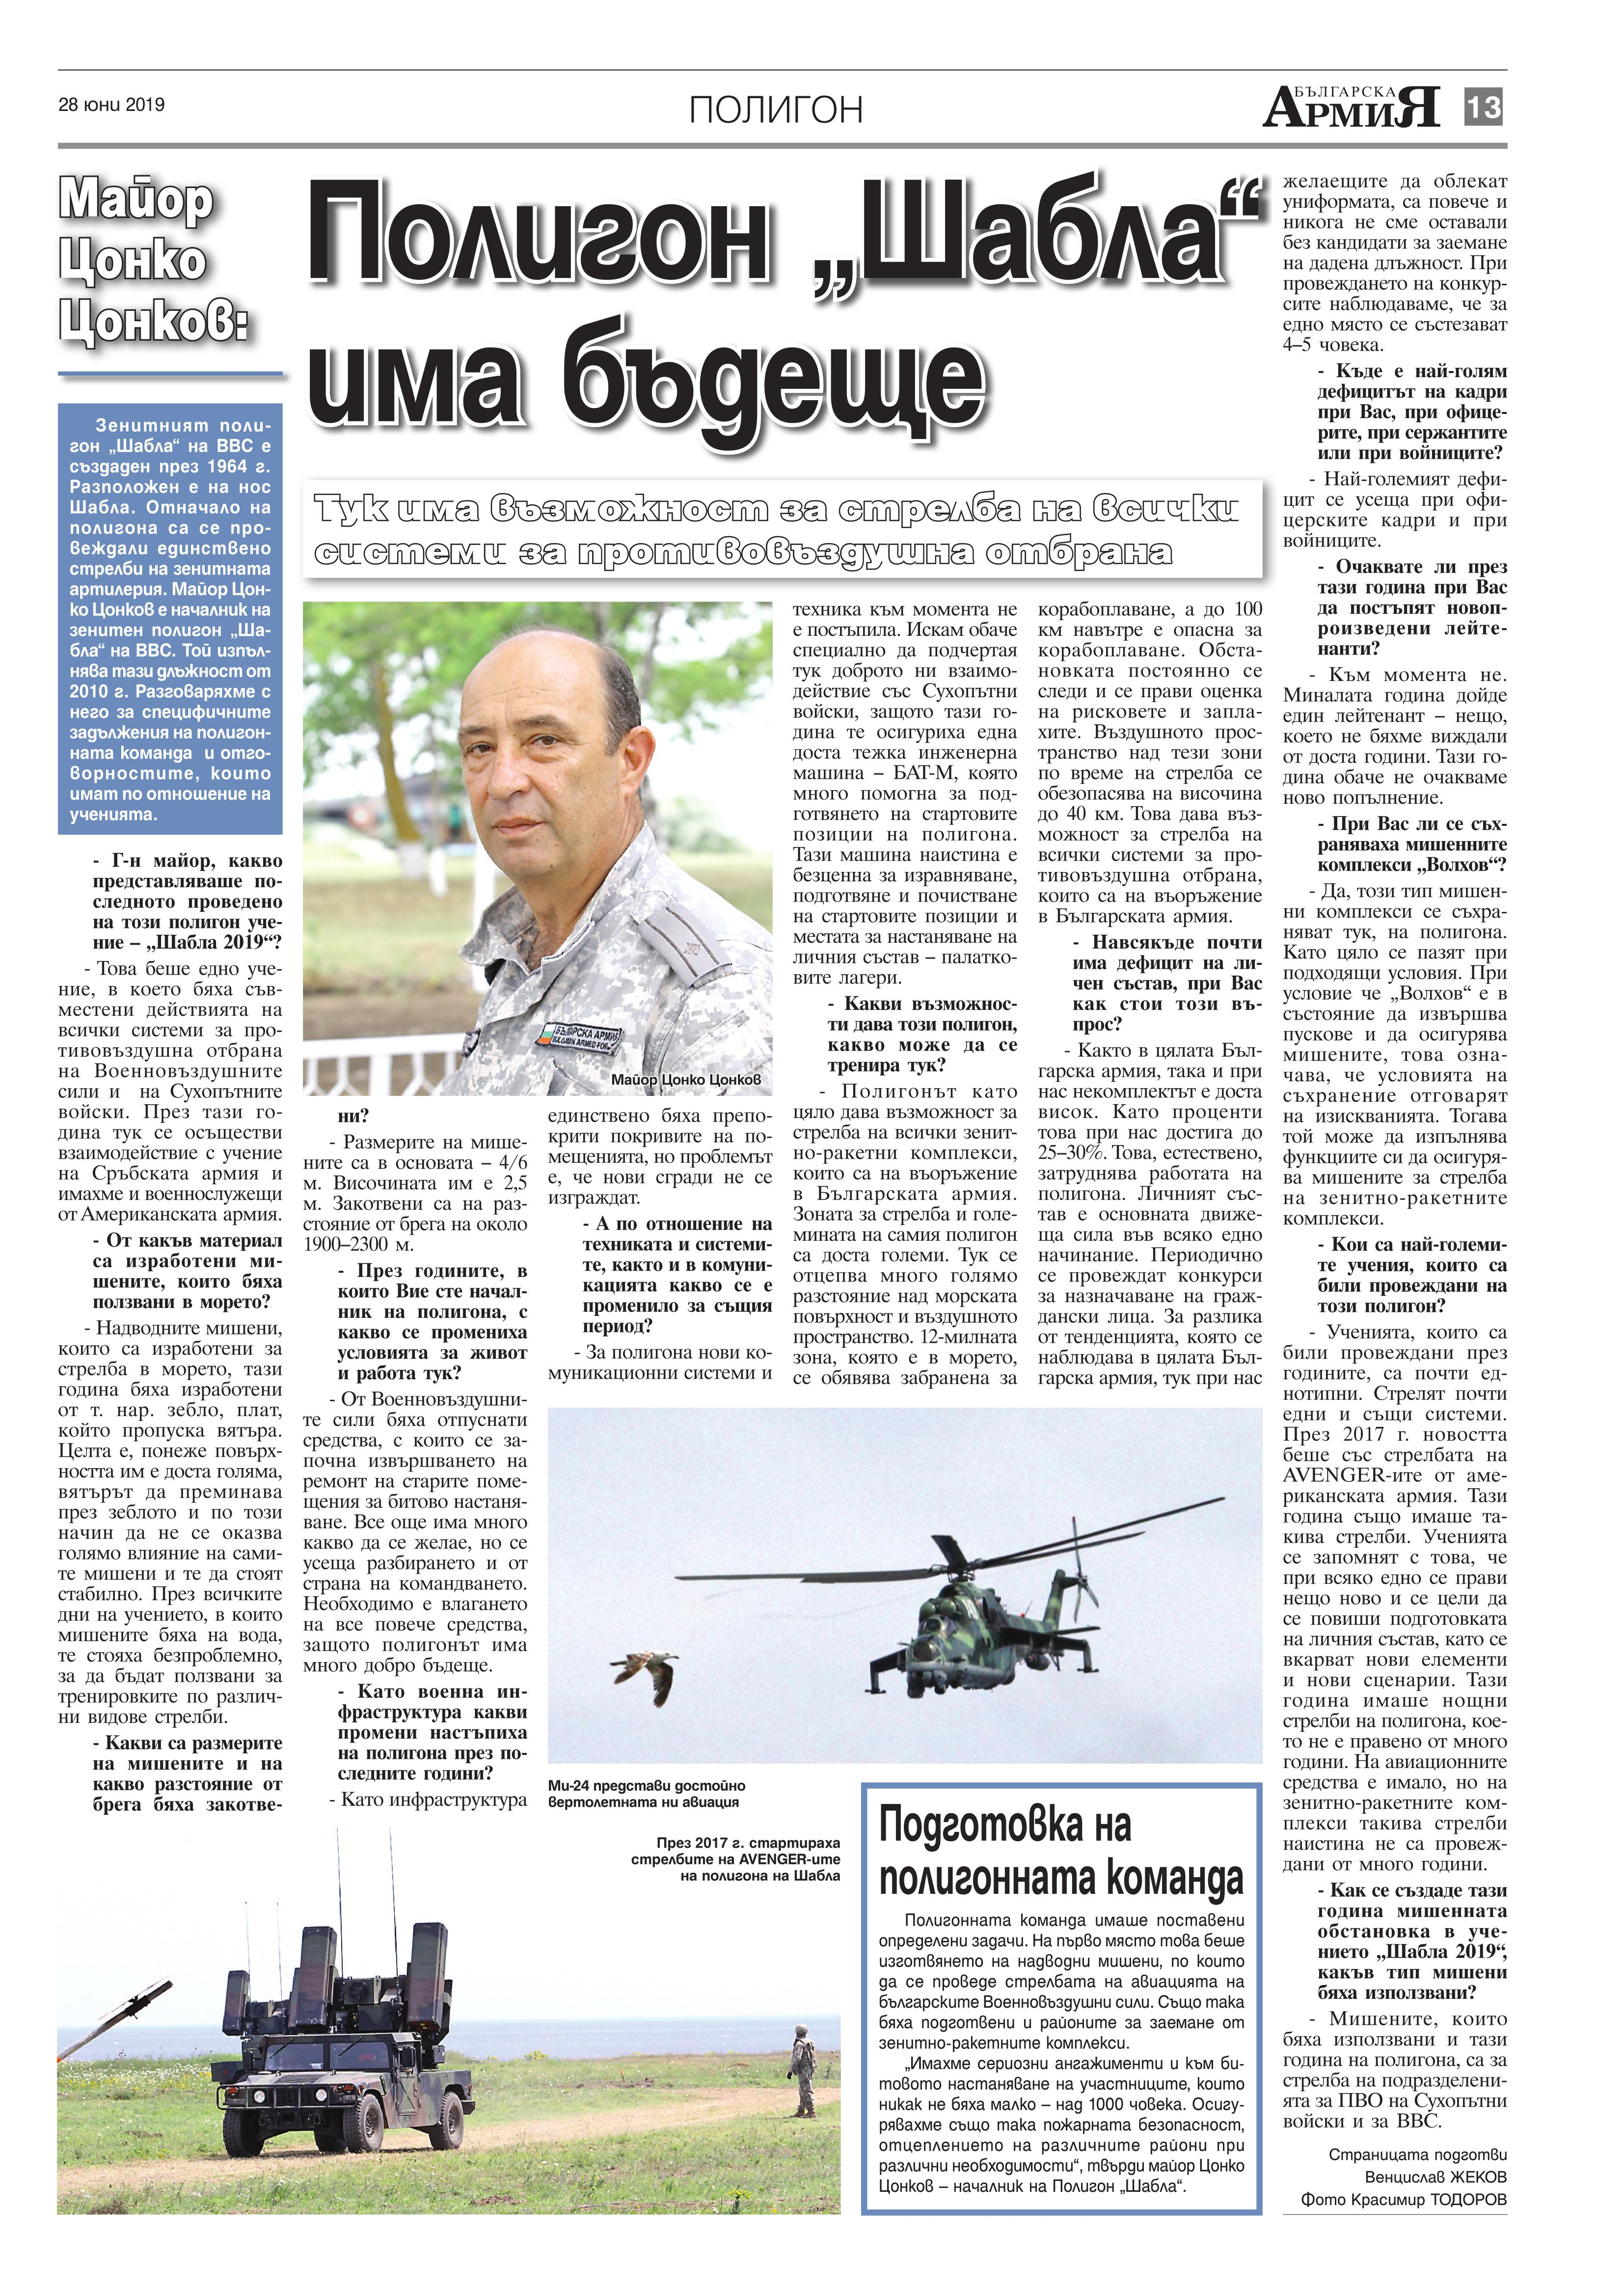 https://armymedia.bg/wp-content/uploads/2015/06/13.page1_-101.jpg